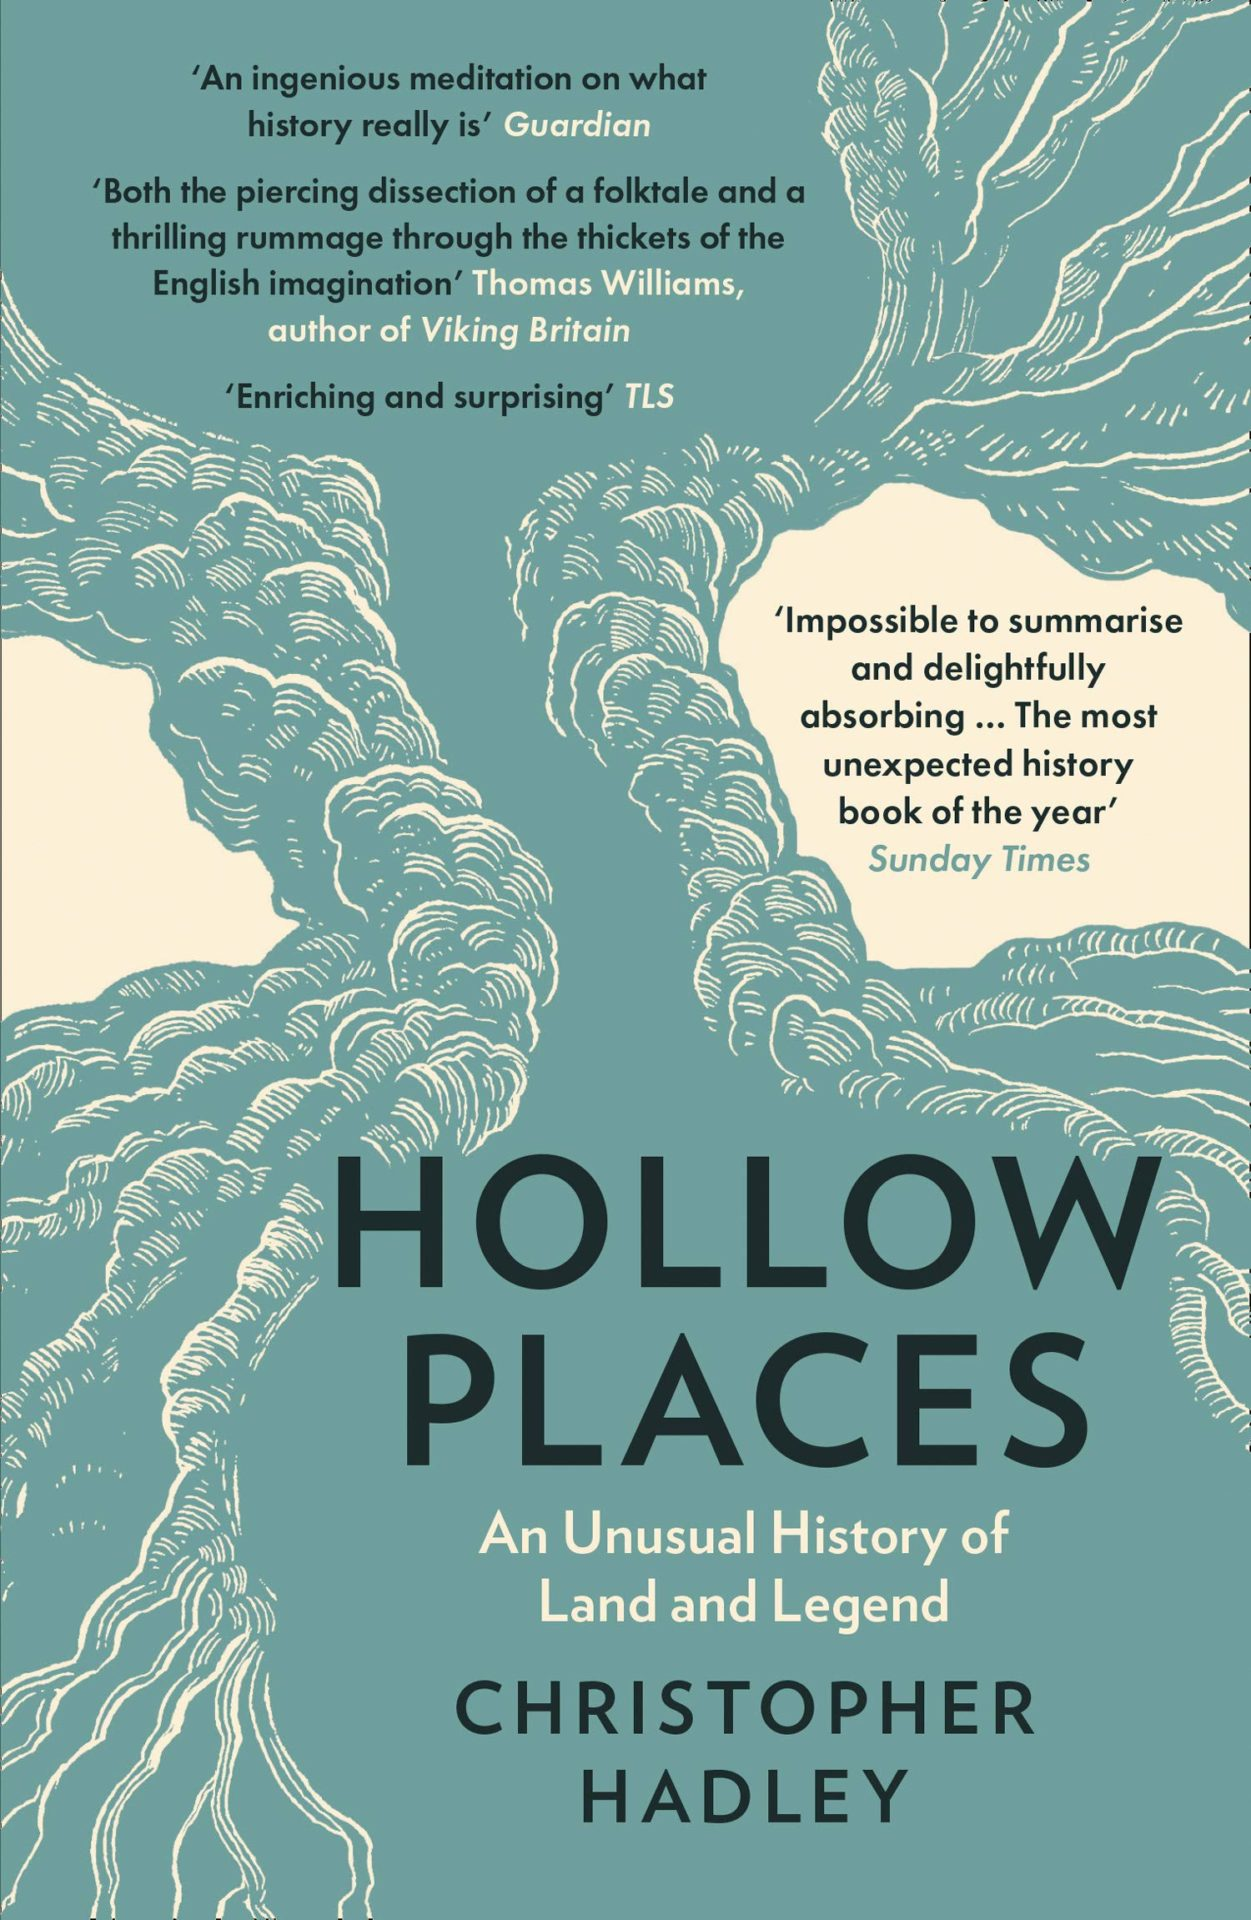 Hollow Places: An Unusual History of Land and Legend by Christopher Hadley